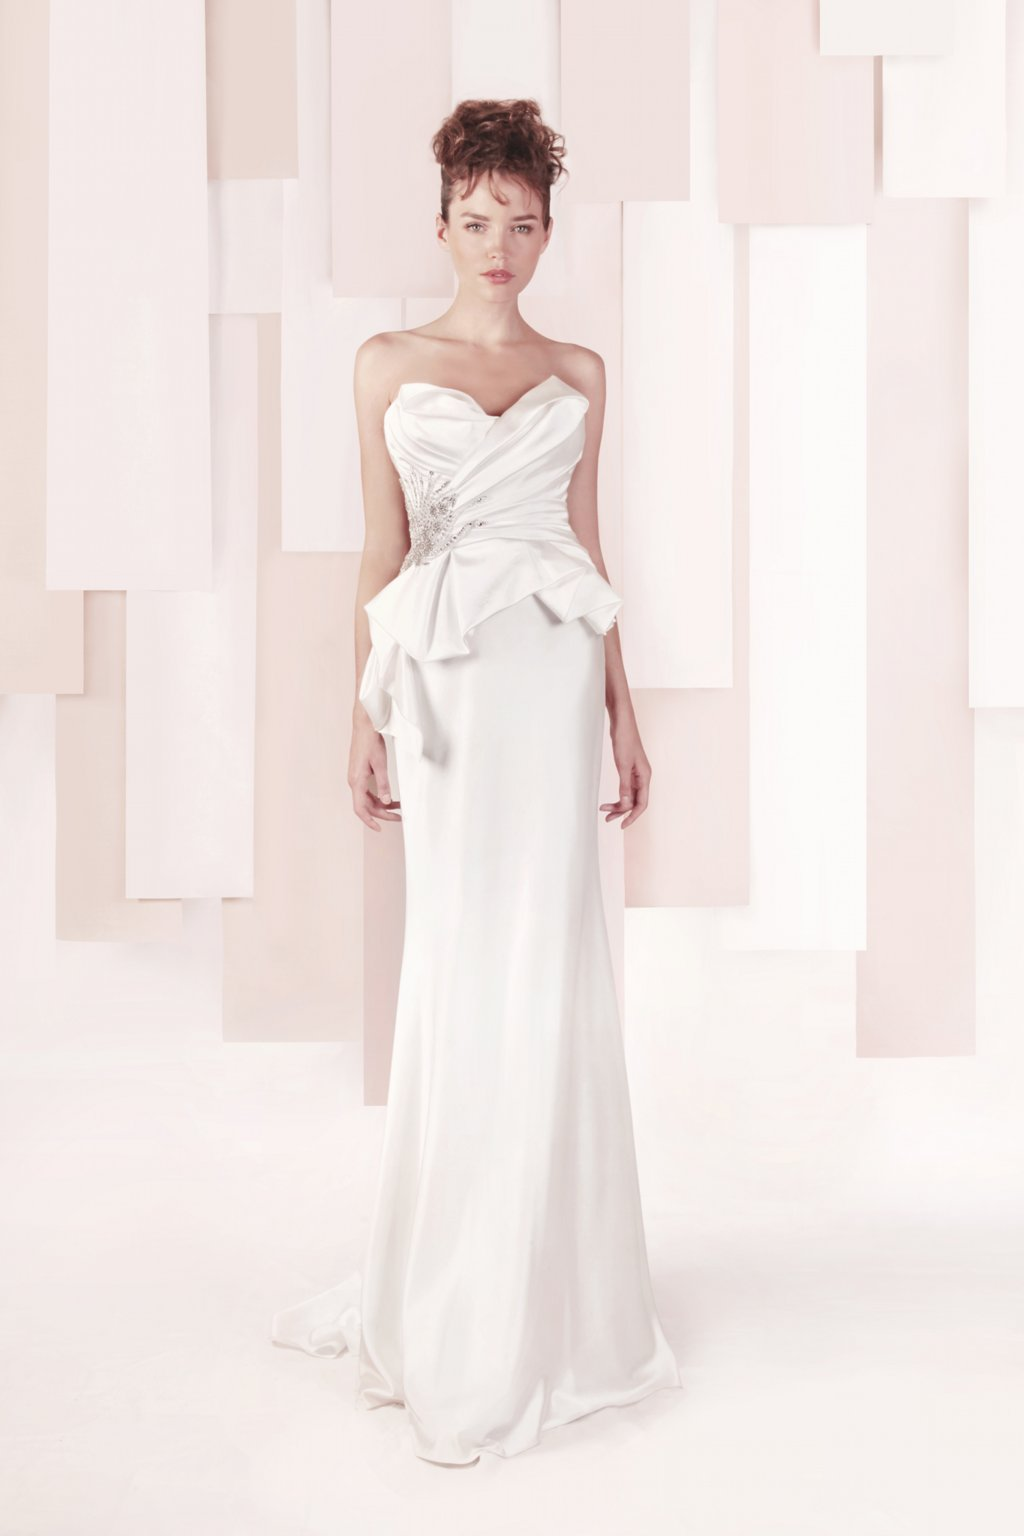 Wedding Dress by Gemy Maalouf 2013 bridal style 3288